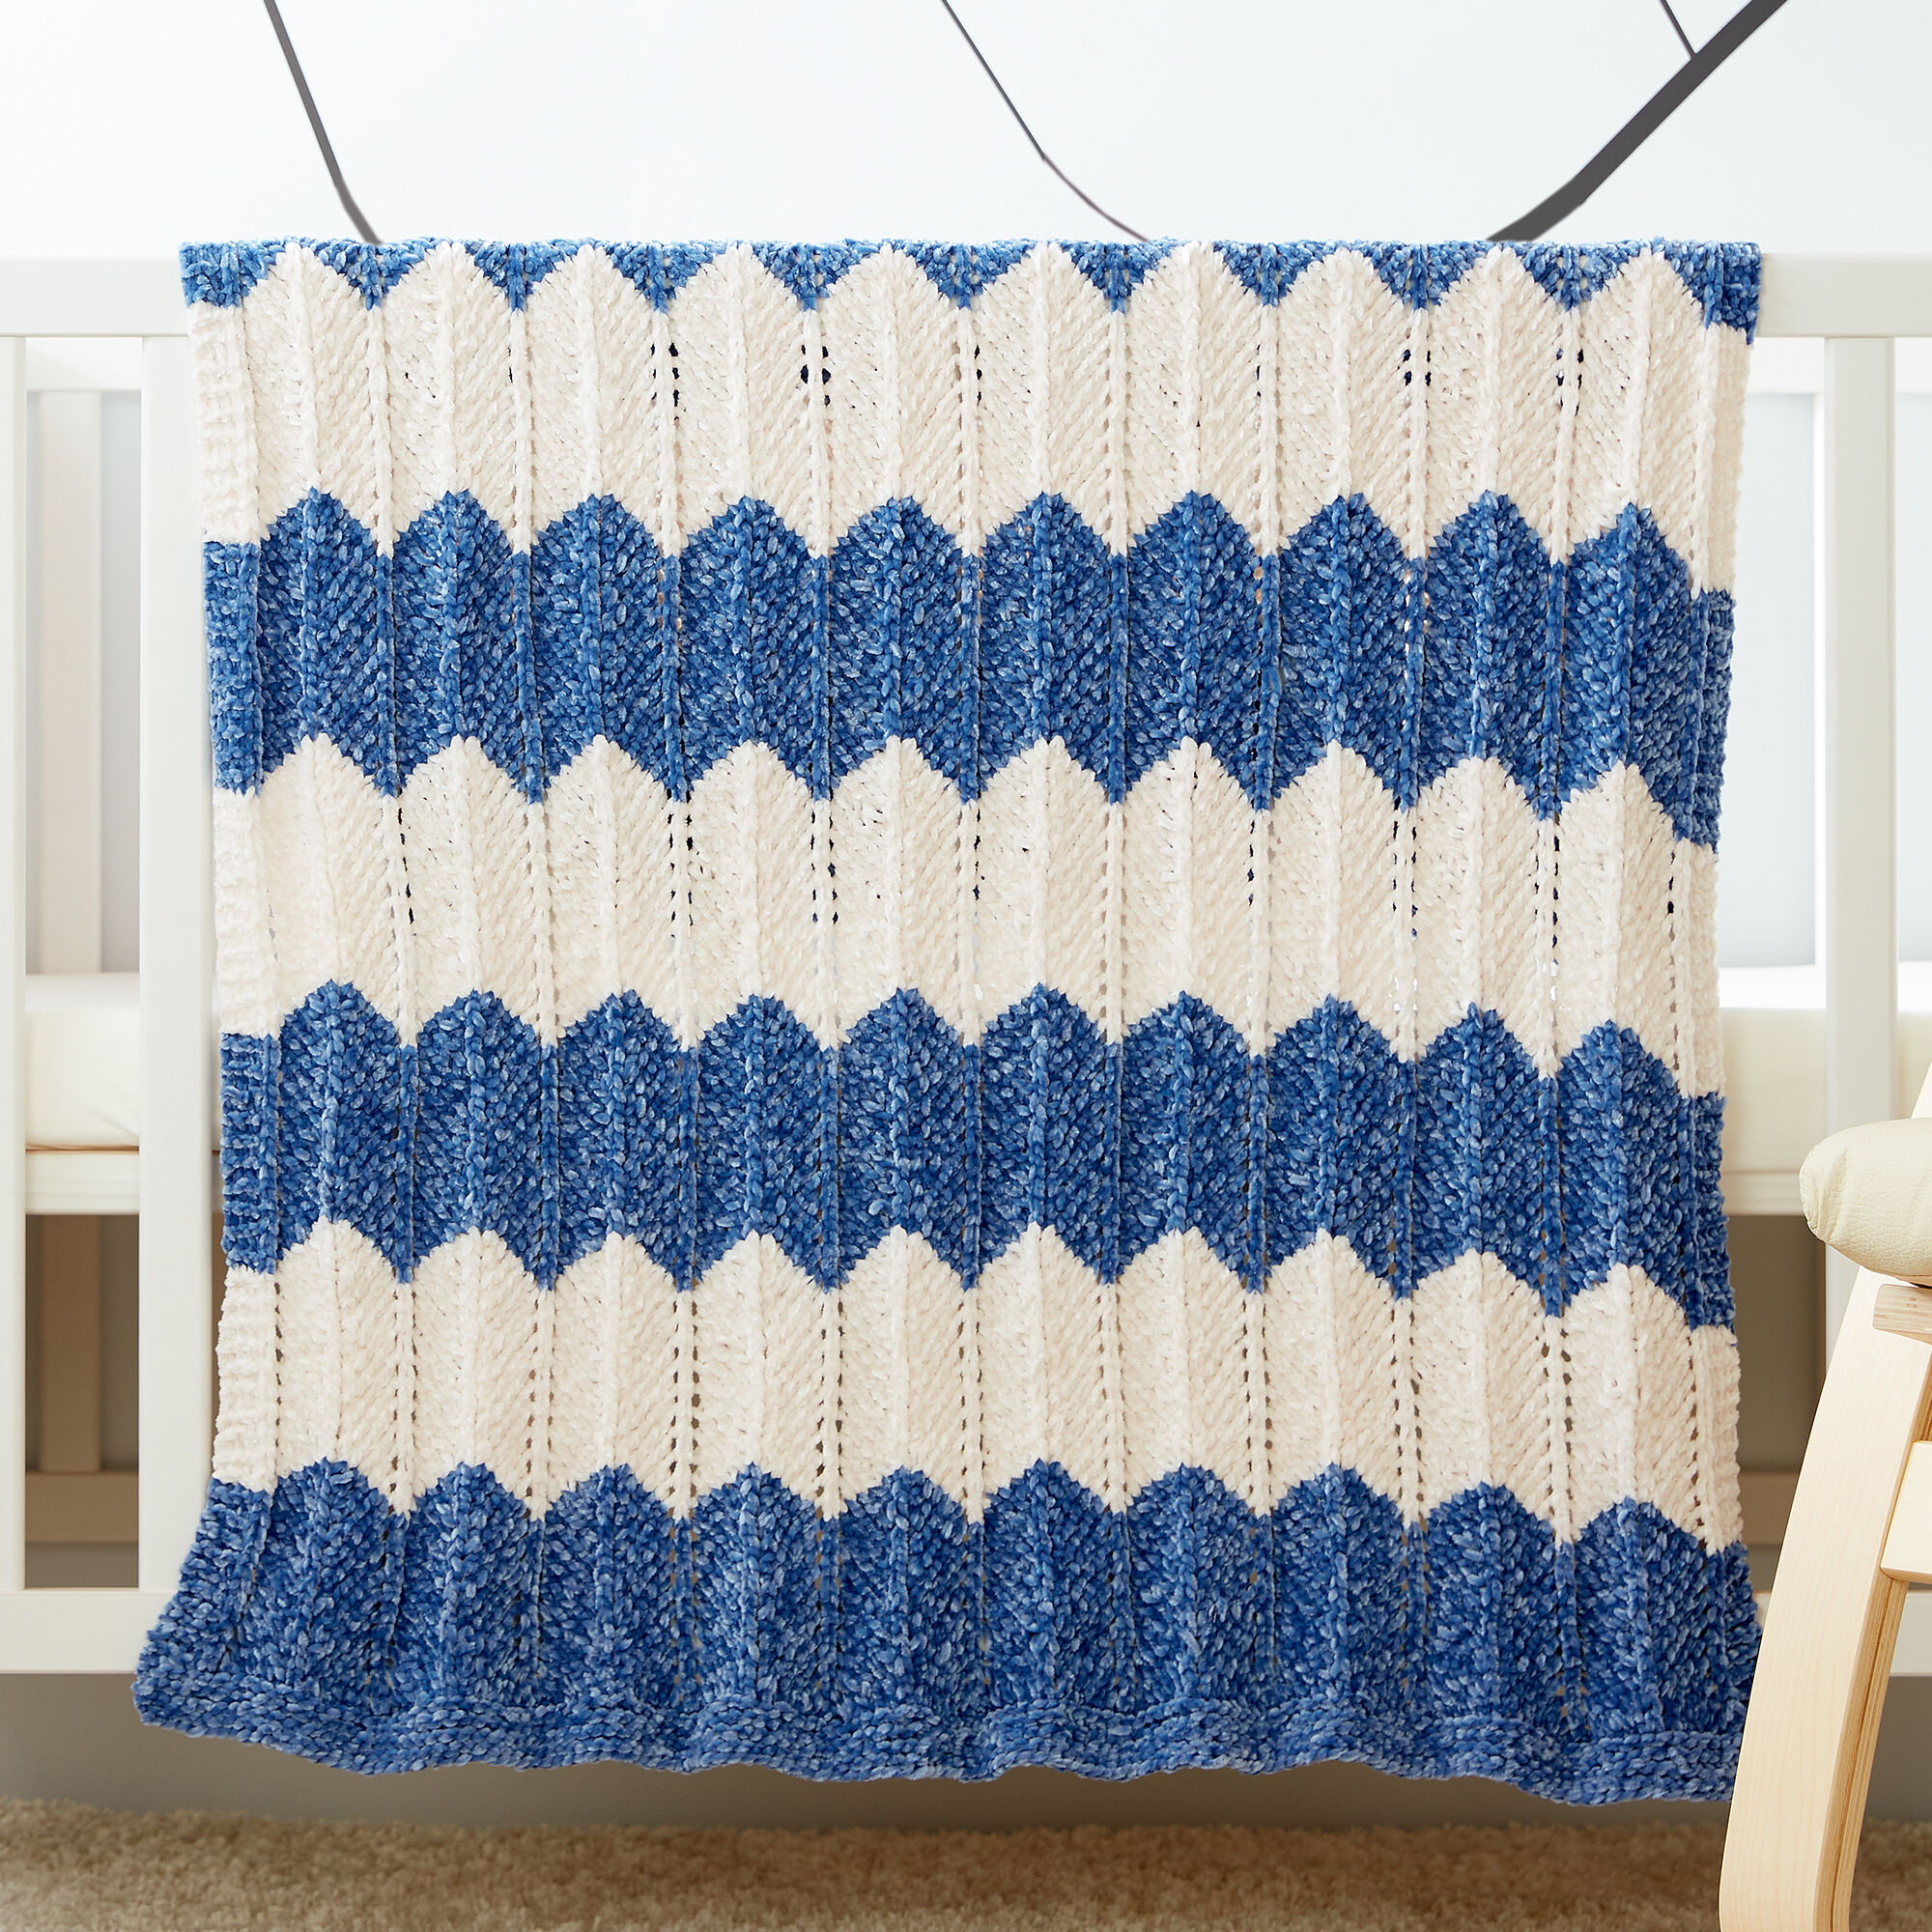 knitting pattern for super soft baby blanket knit with Bernat Velvet yarn in worsted weight